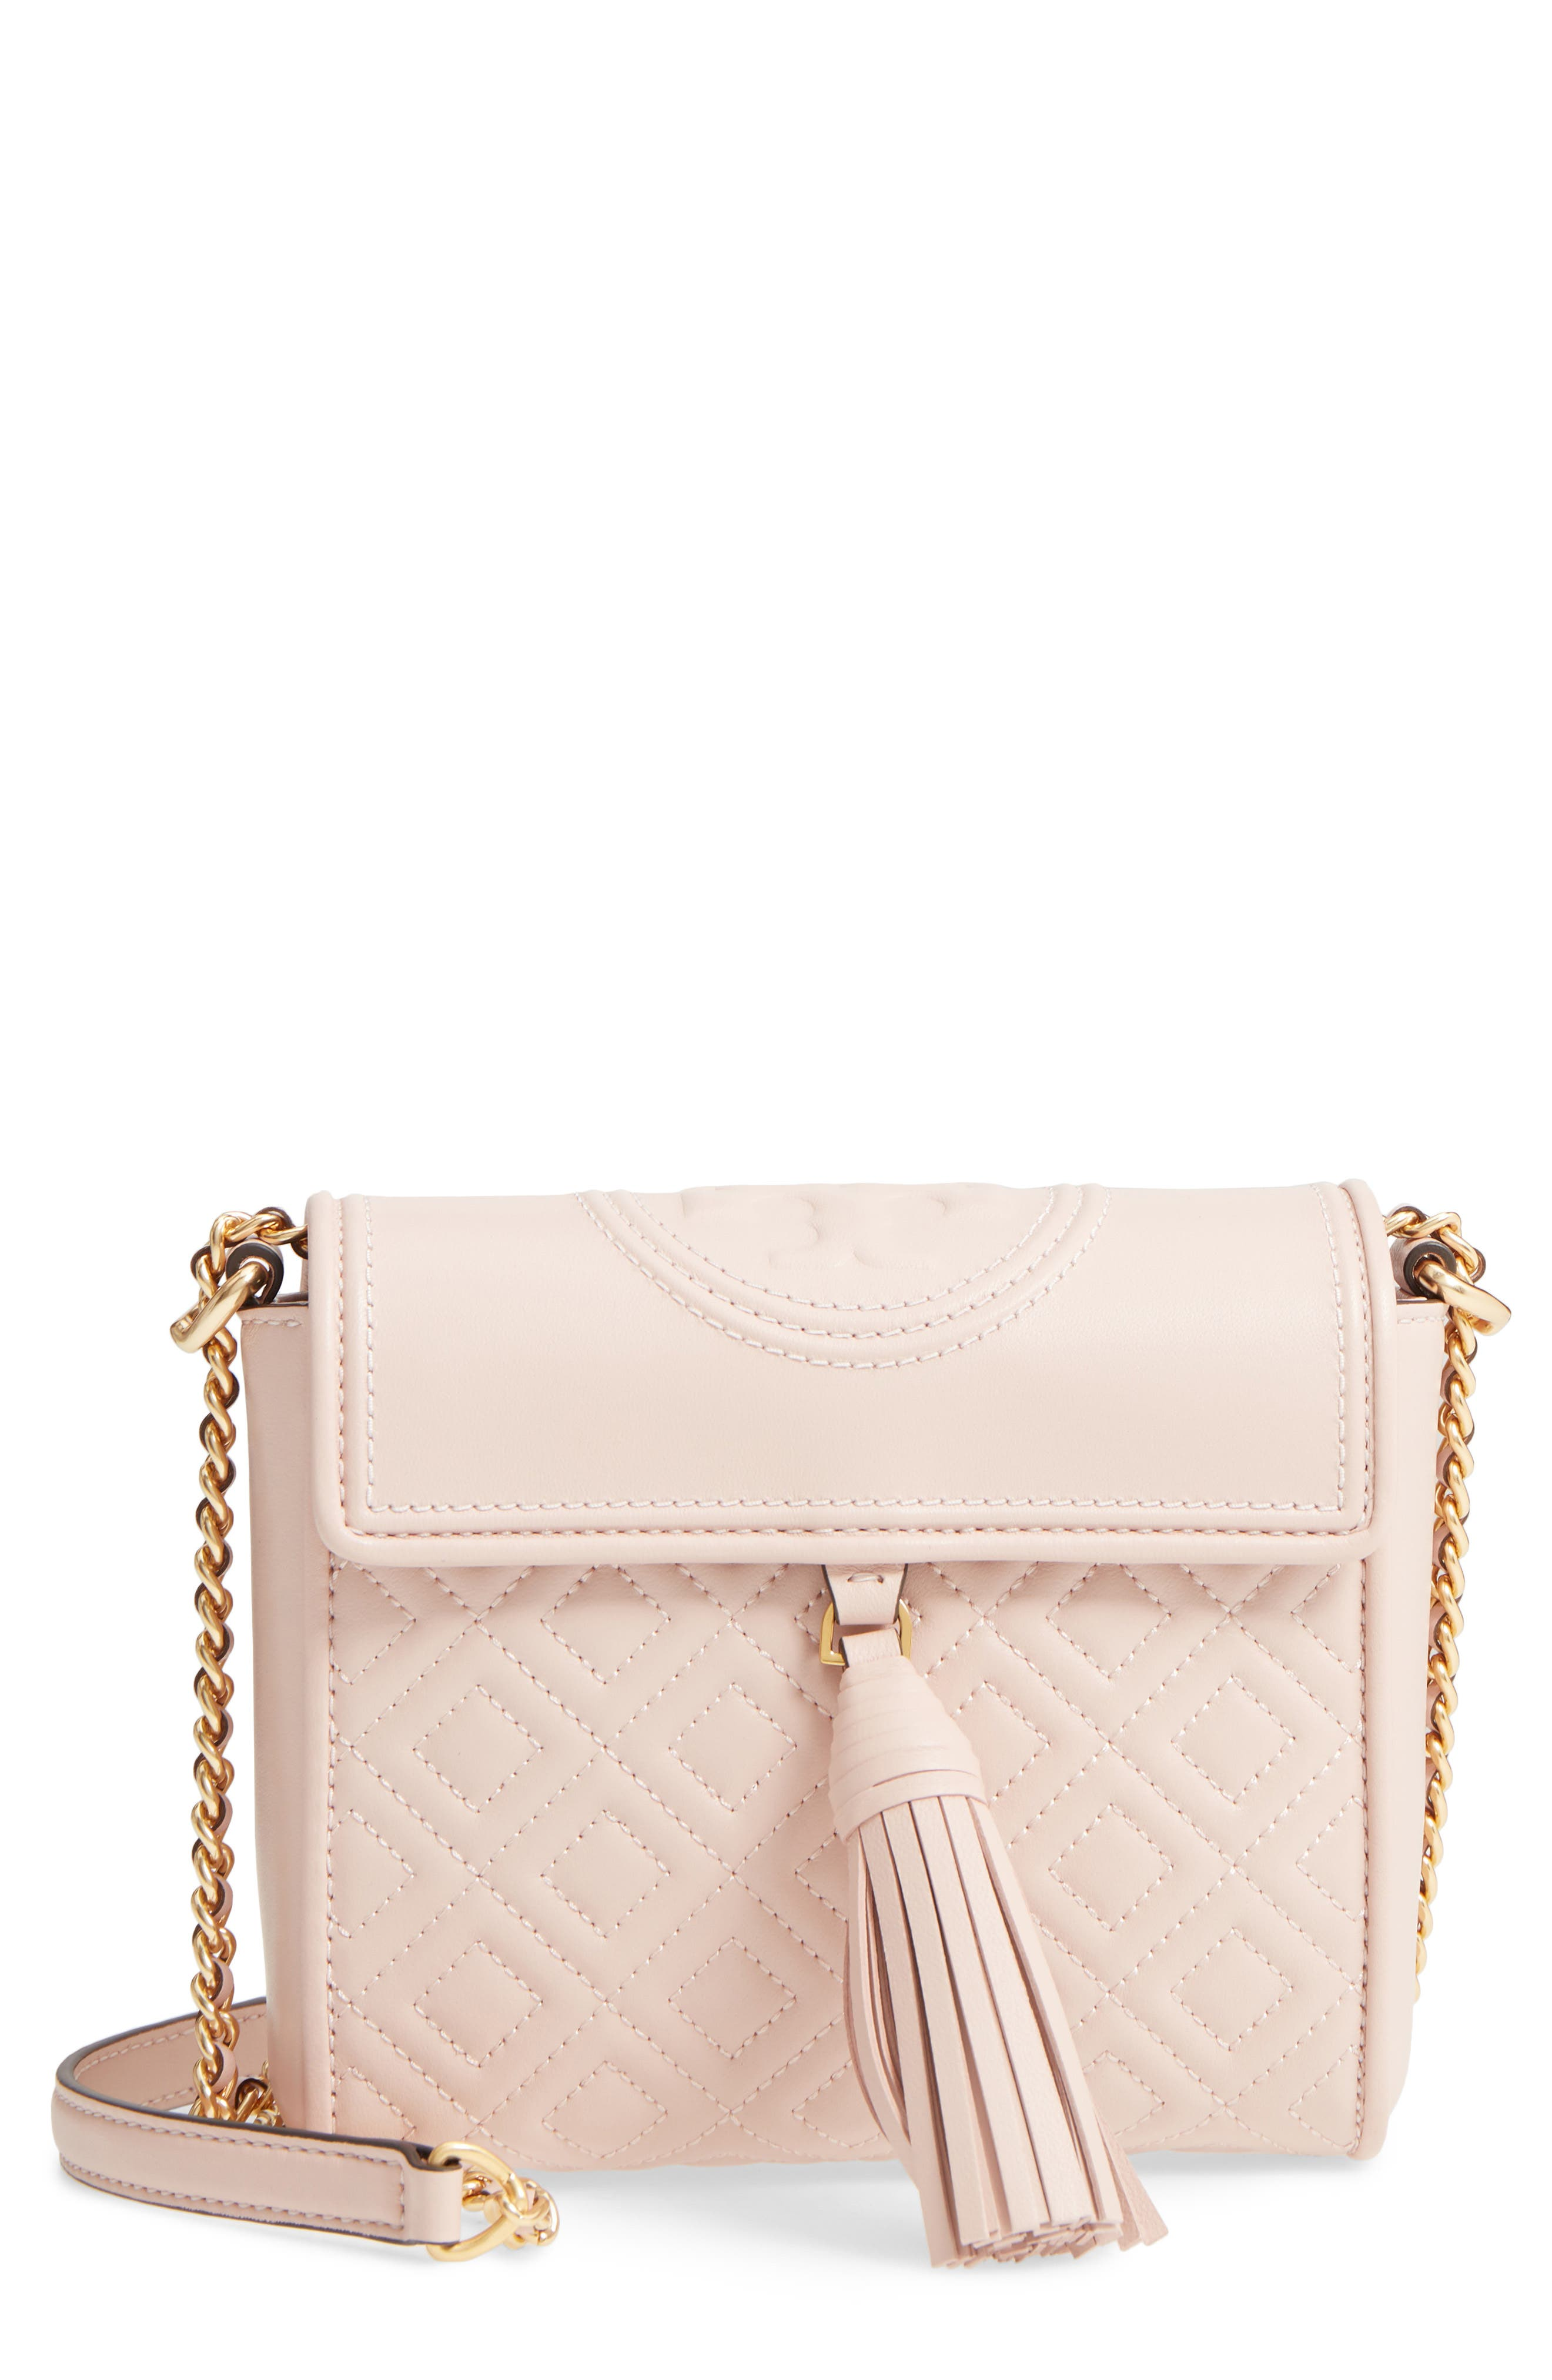 Fleming Quilted Leather Crossbody Bag,                             Main thumbnail 1, color,                             Shell Pink